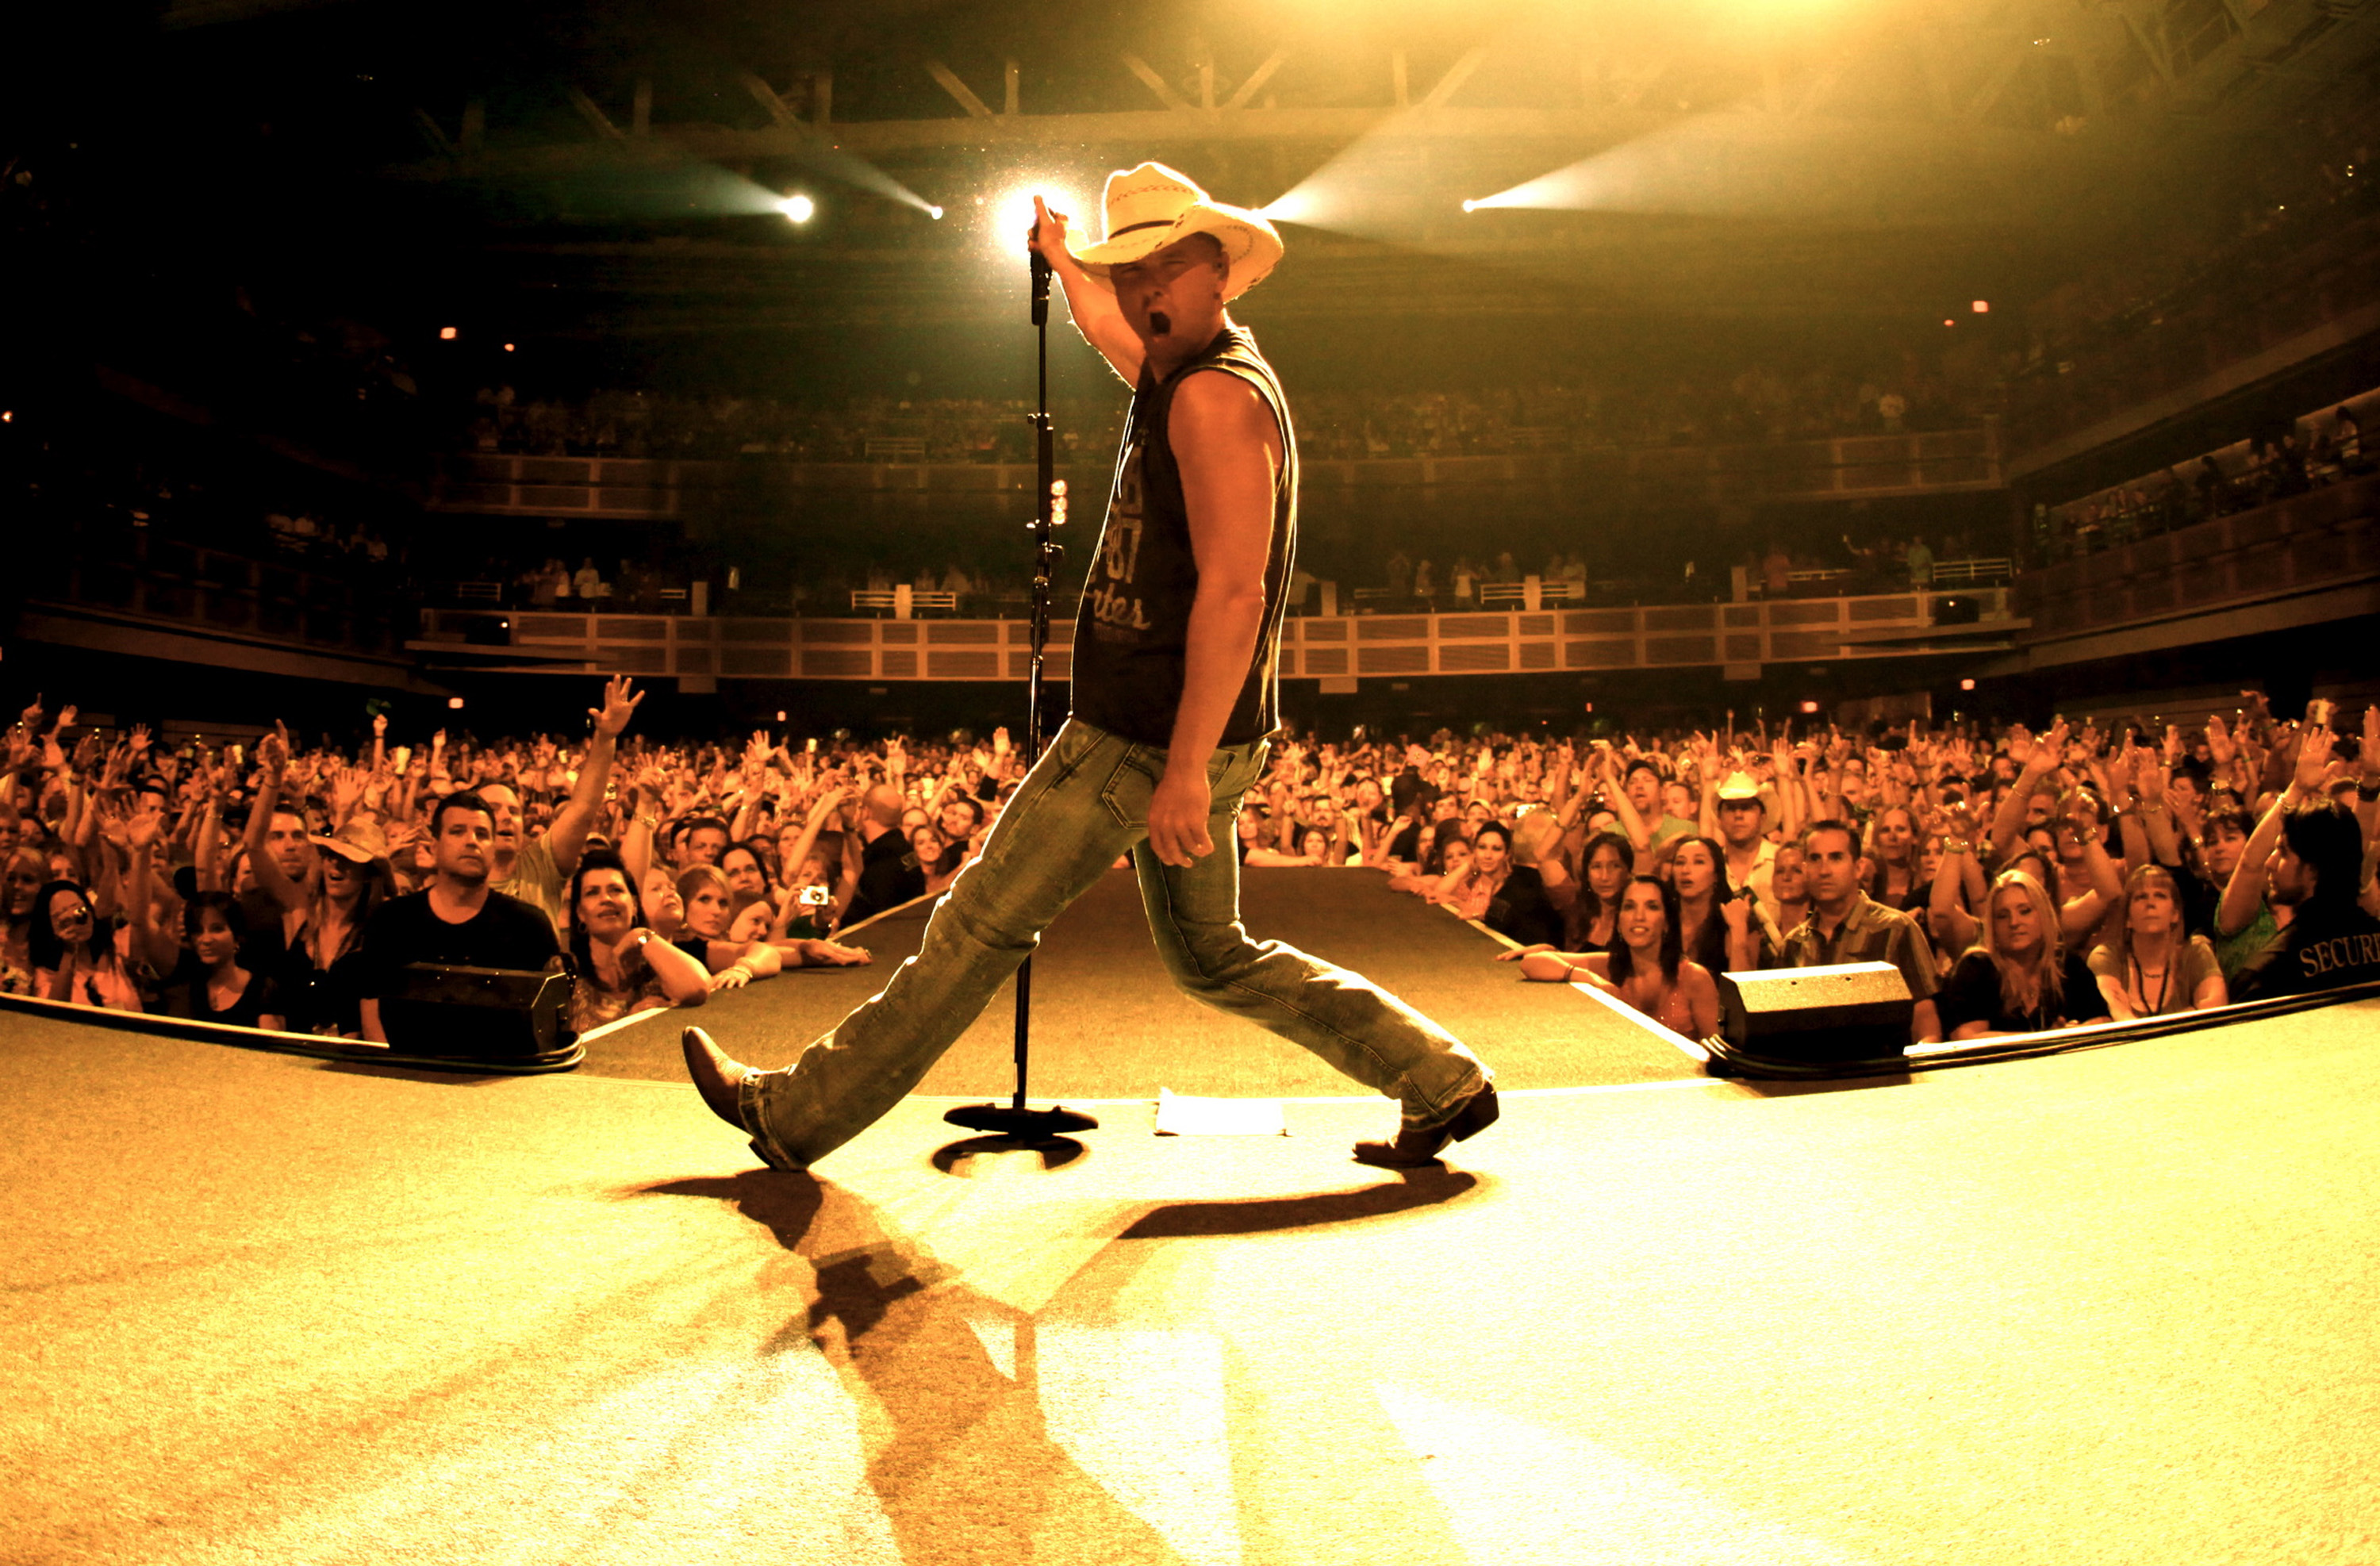 kenny chesney performing wallpaper background 59981